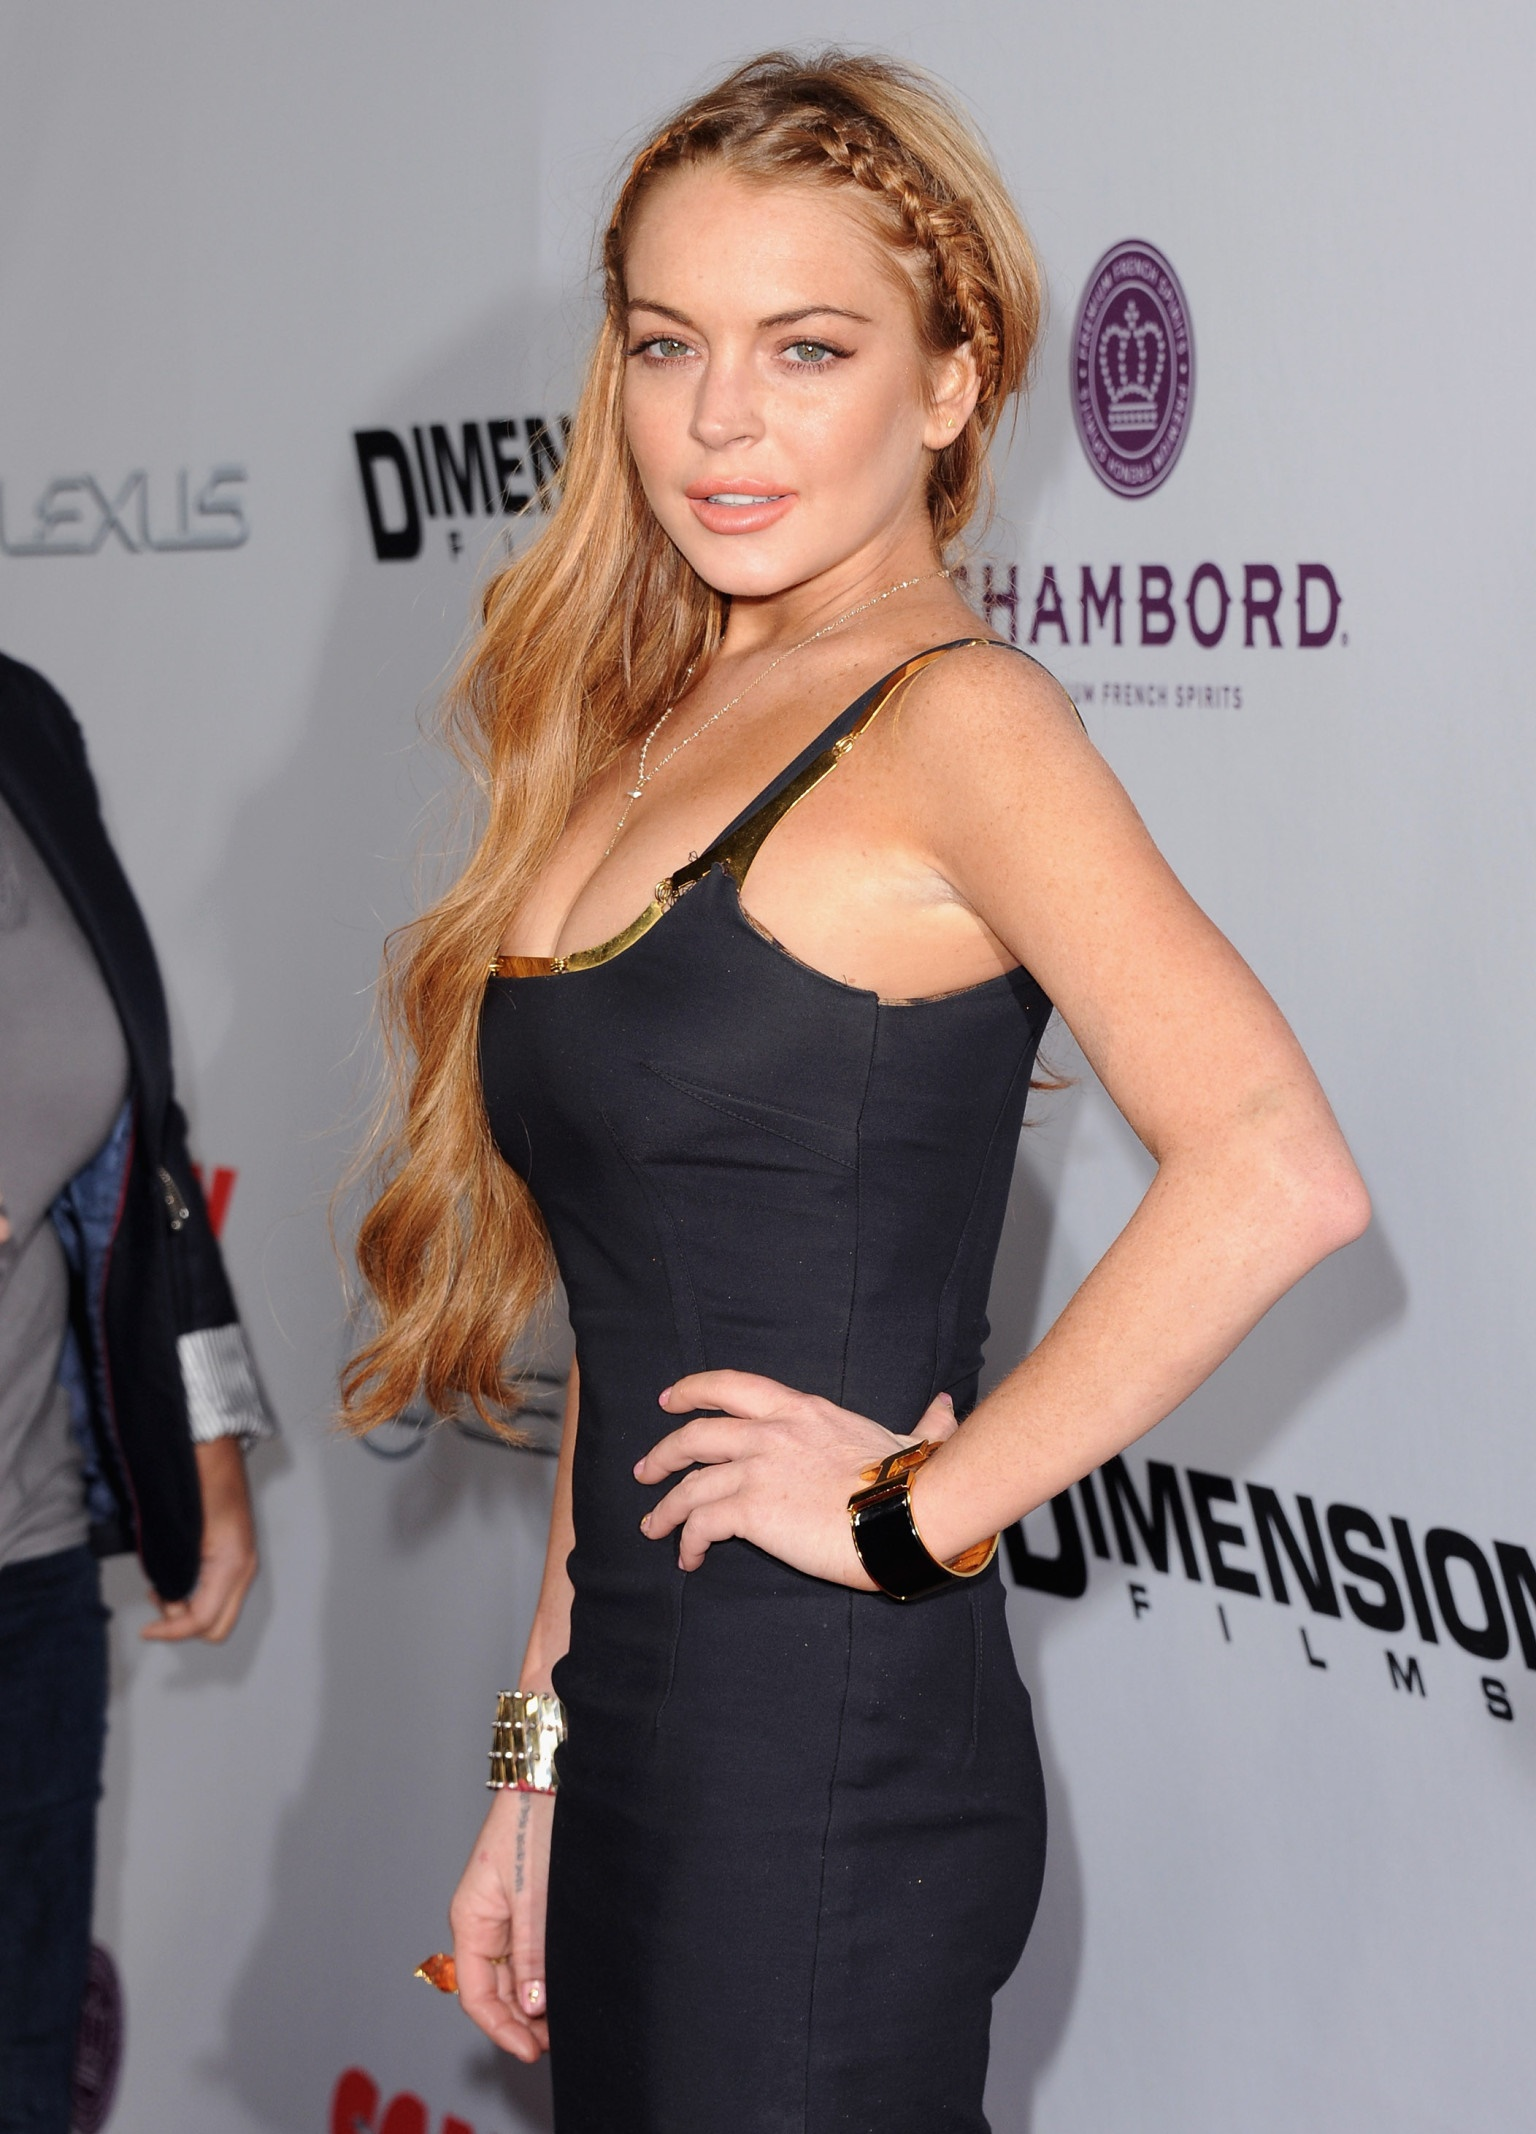 Lindsay Lohan Hot & Sexy Photos, Near-Nude Pics